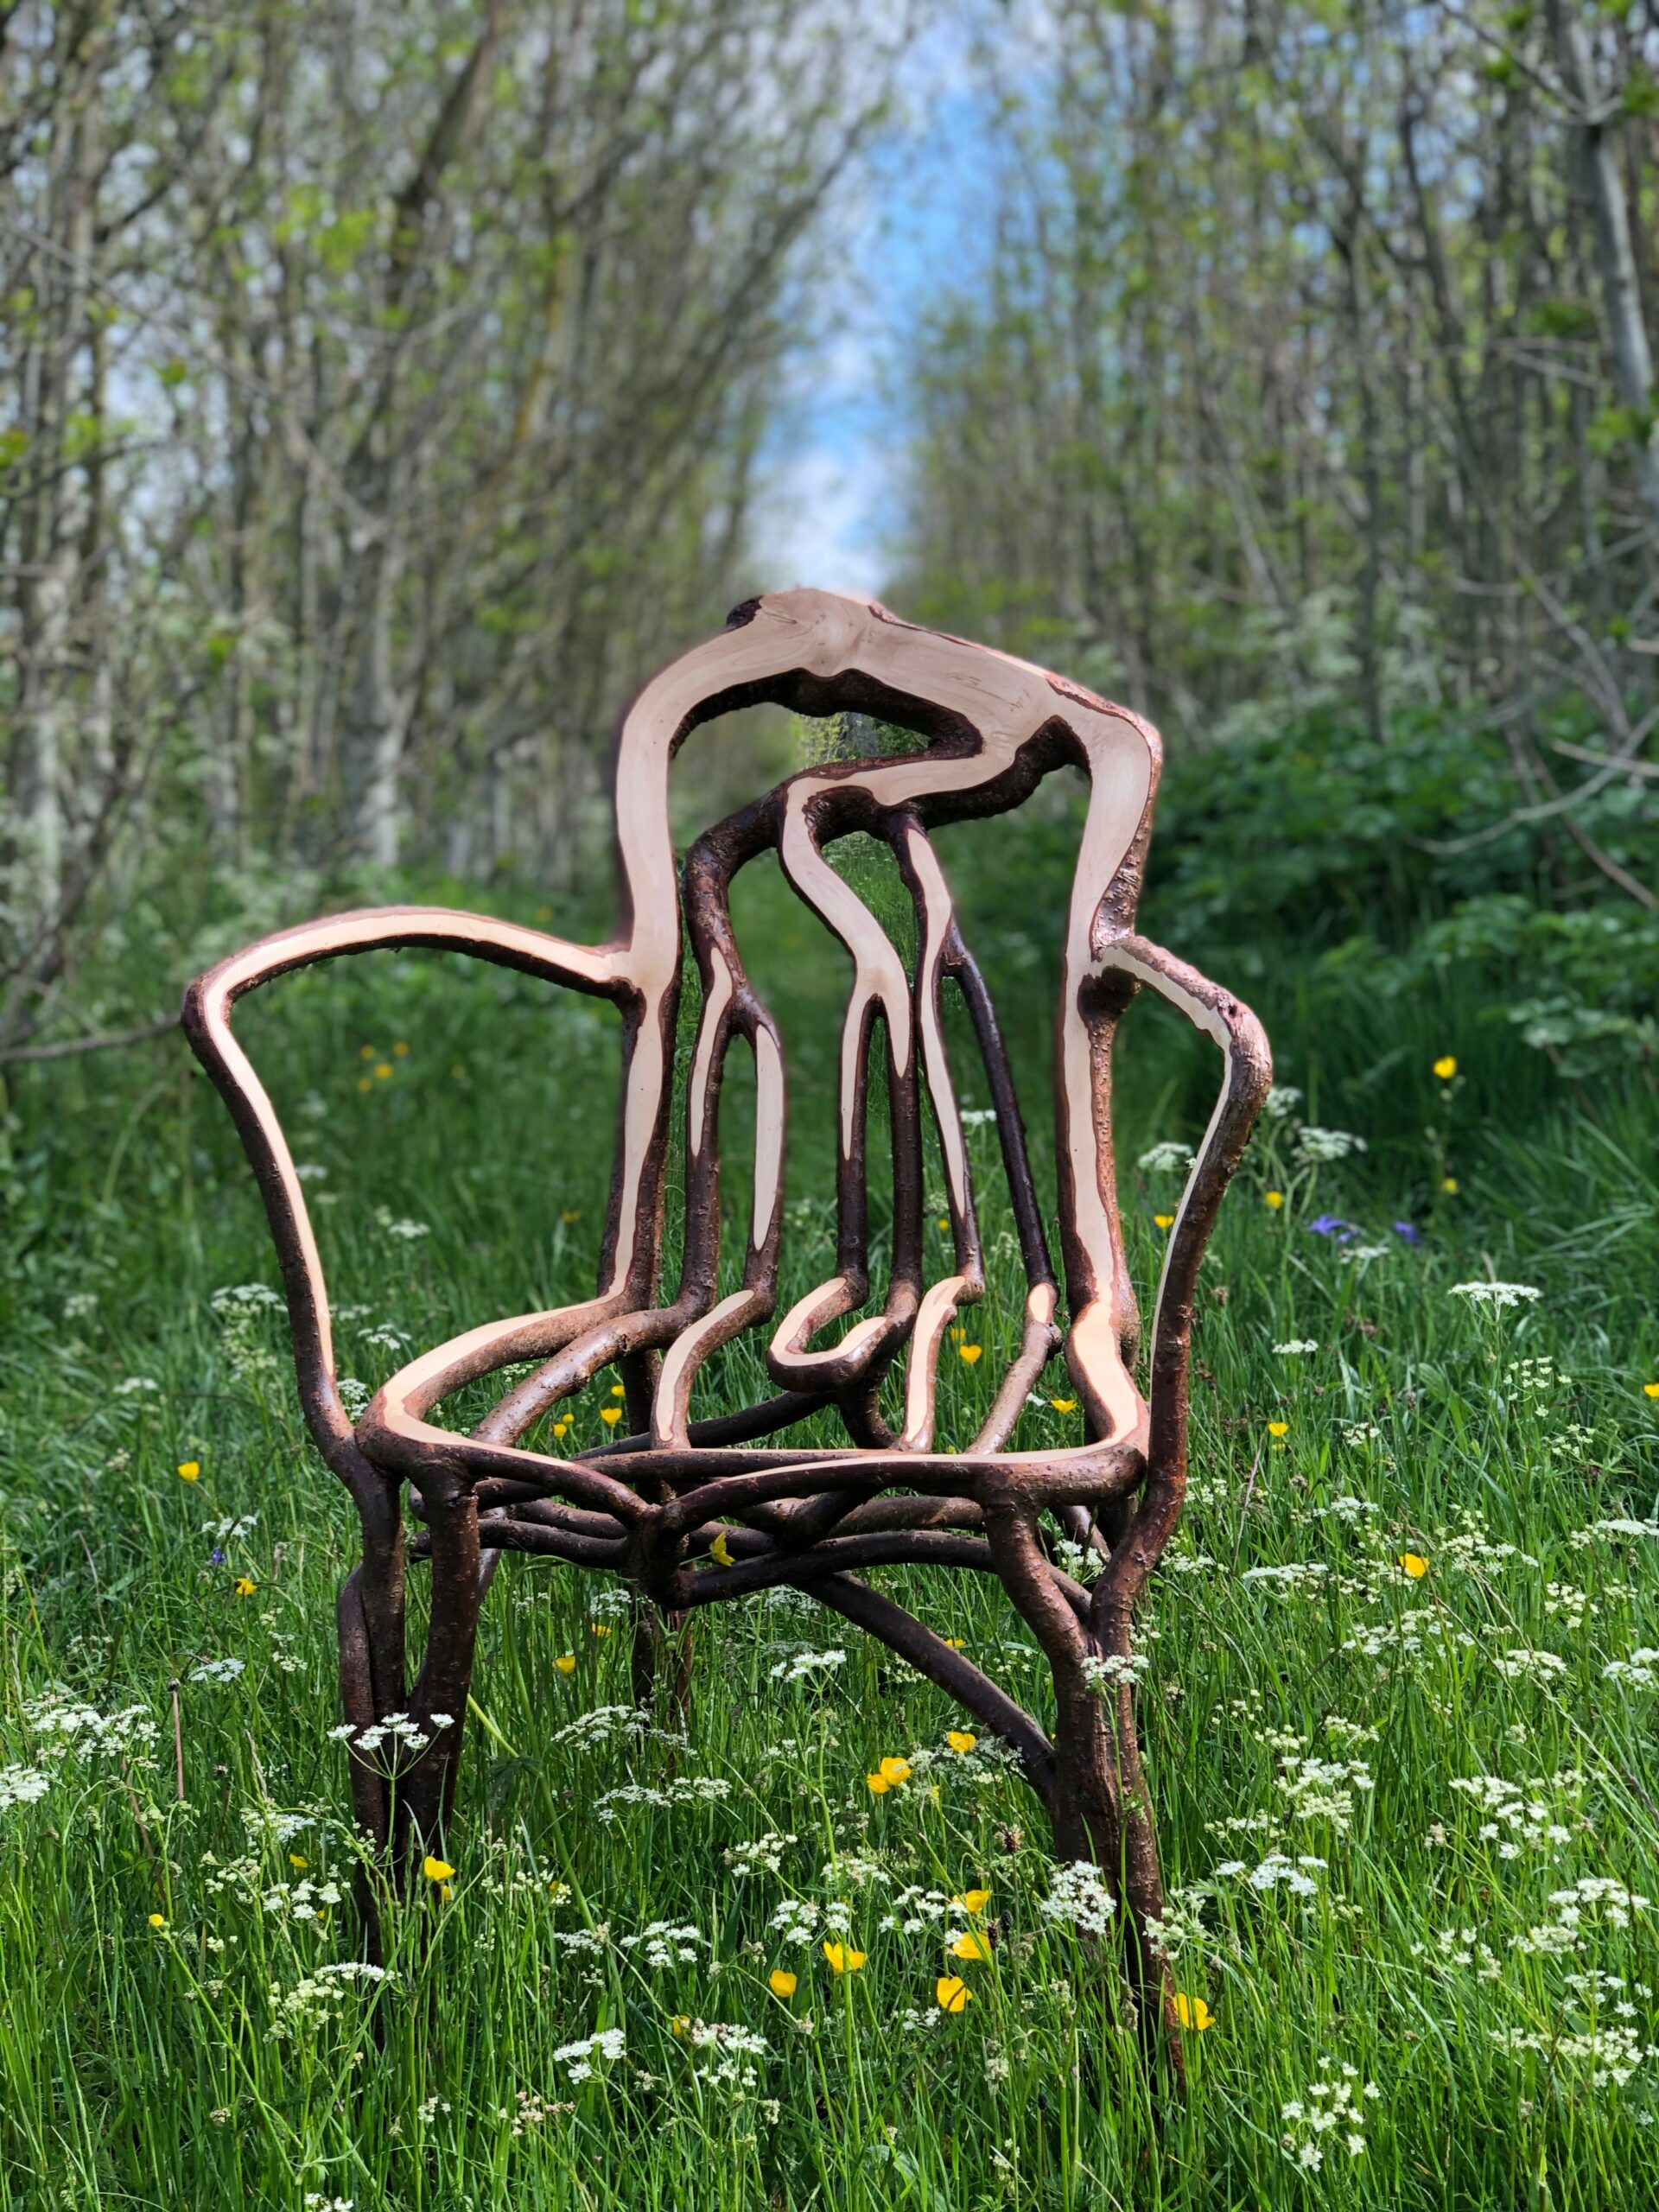 The Gatti Chair in the Orchard